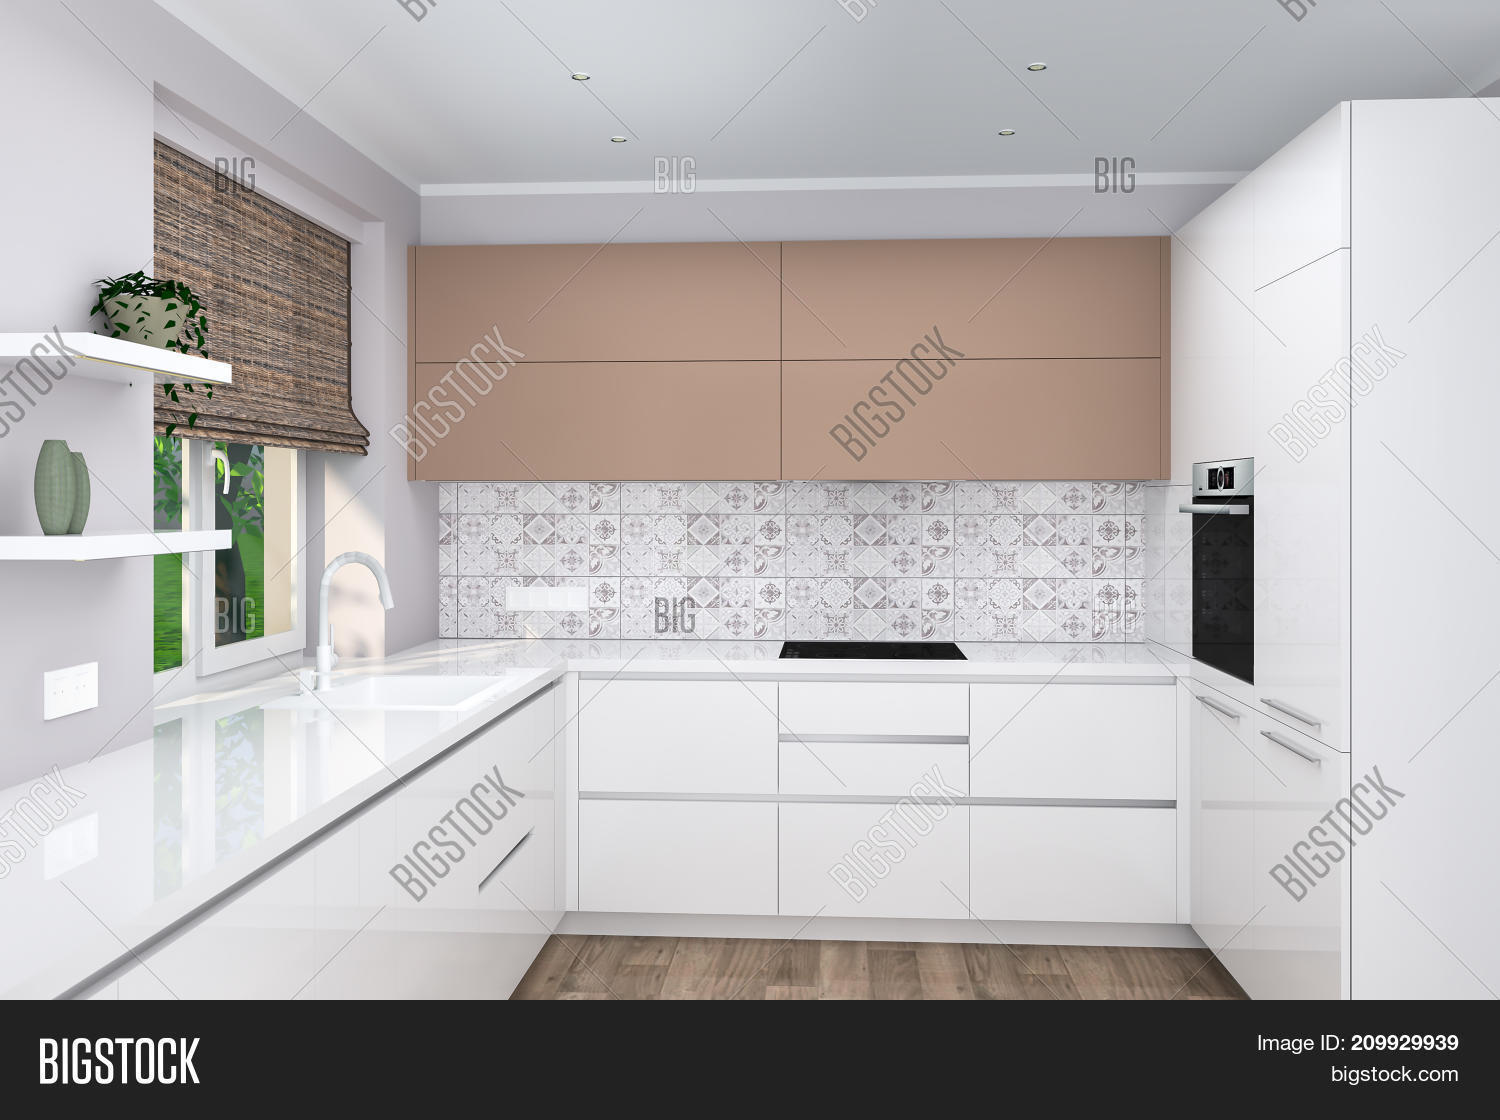 Realistic 3d Rendering Image Photo Free Trial Bigstock